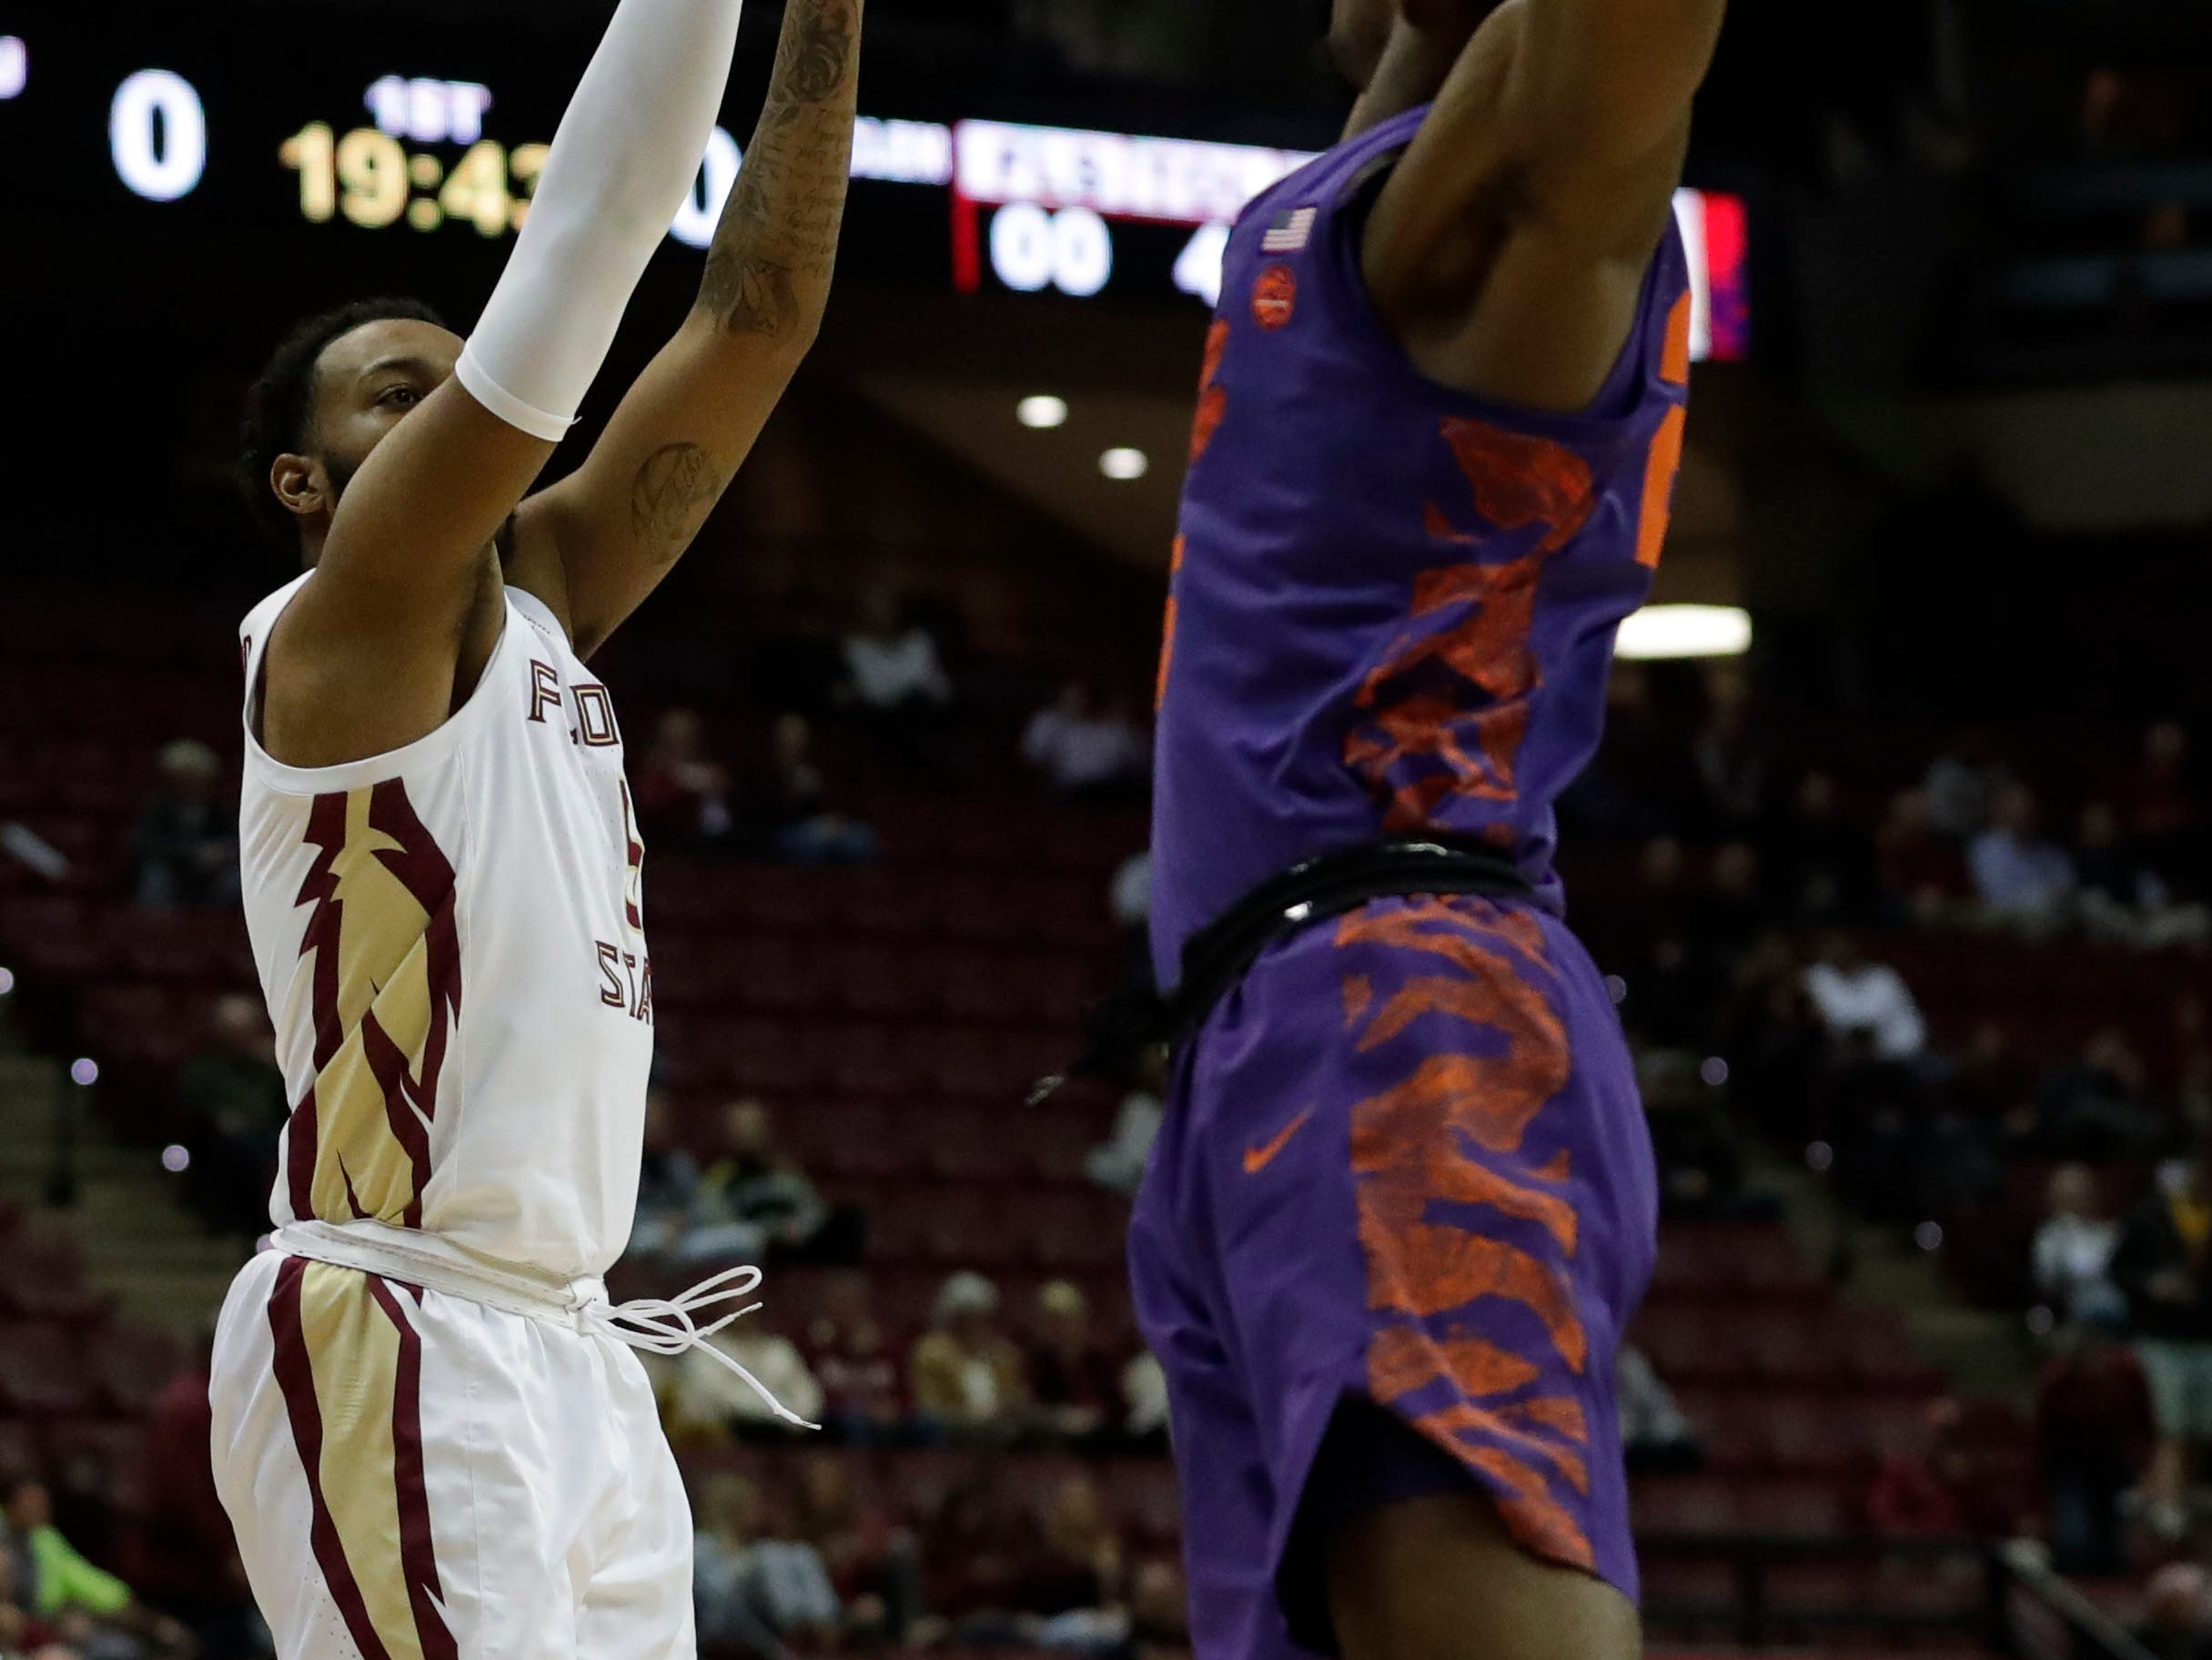 Florida State Seminoles guard PJ Savoy (5) shoots for two over his defender. The Florida State Seminoles face off against the Clemson Tigers at the Tucker Civic Center, Tuesday, Jan. 22, 2019.